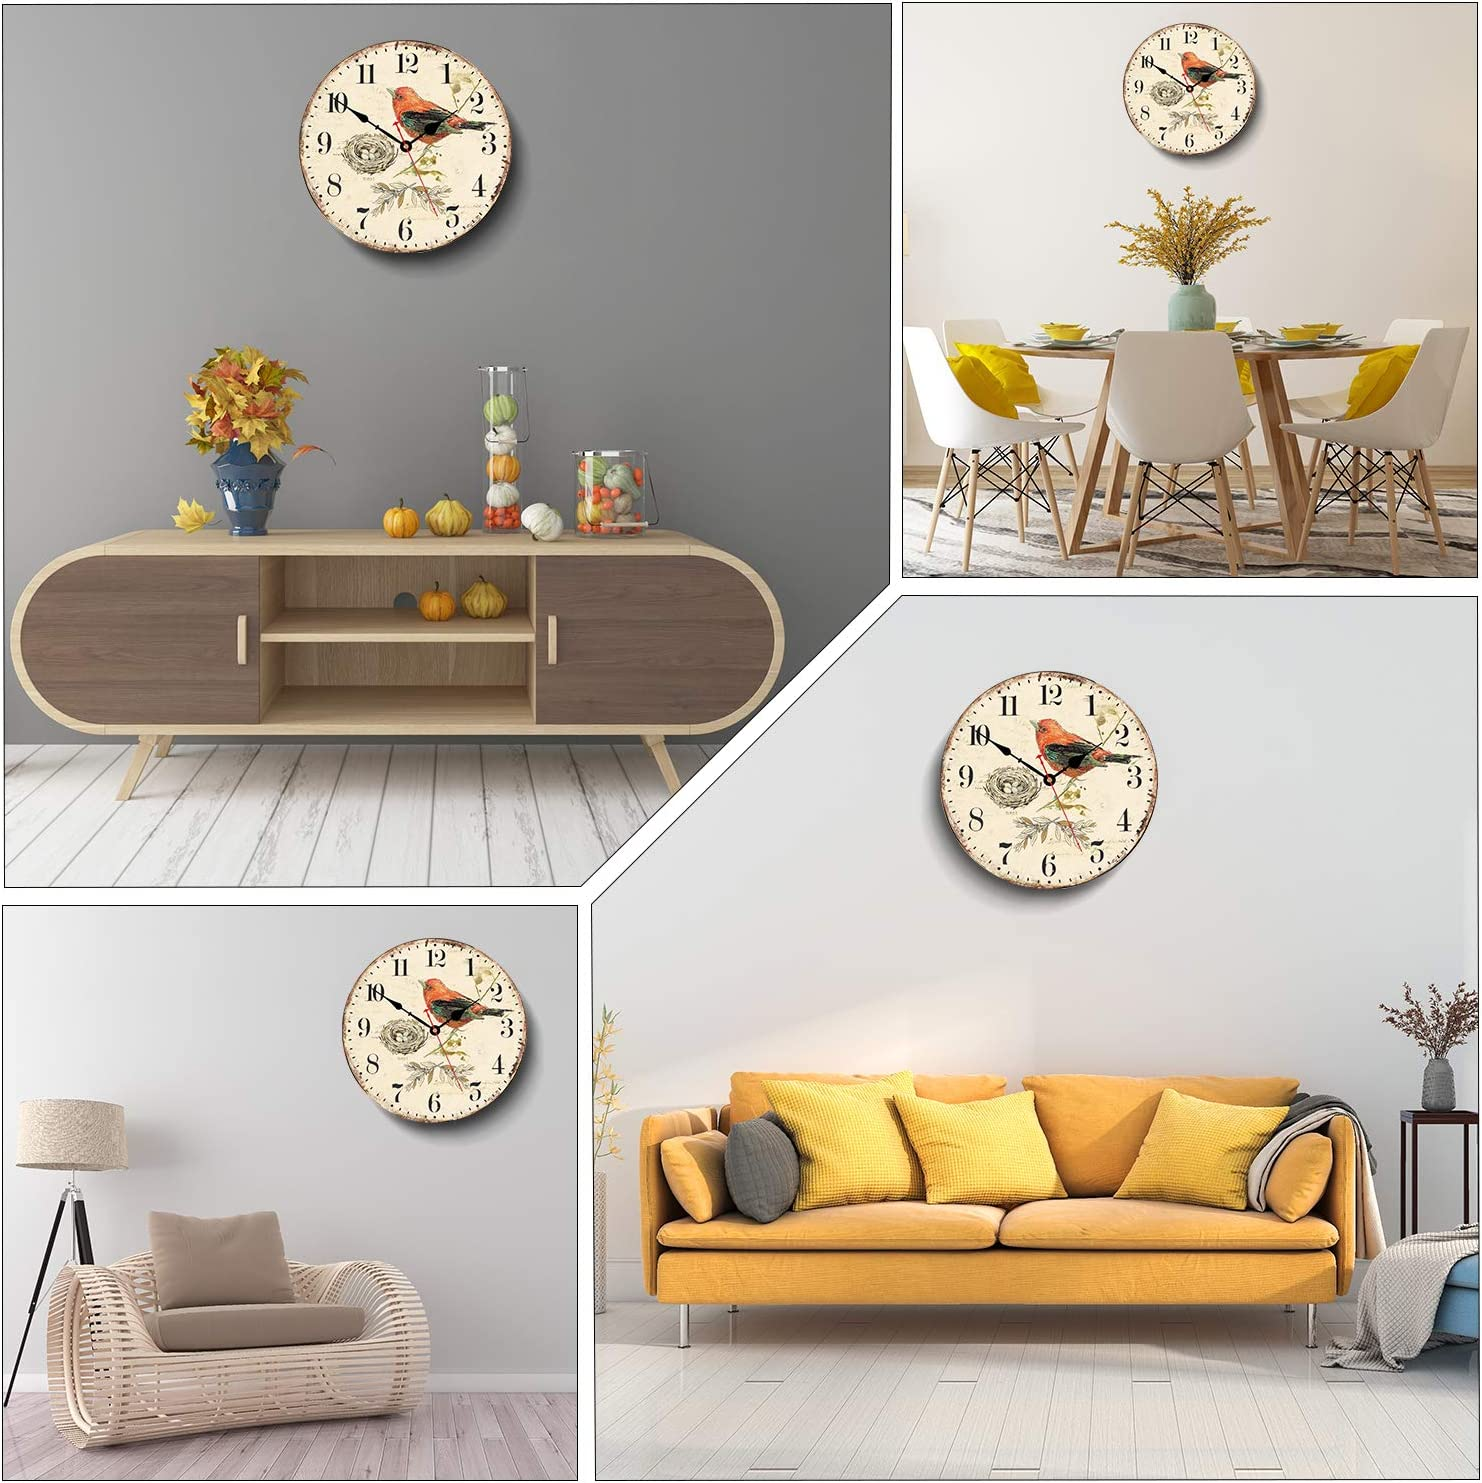 Bird on Branch Pattern WISKALON 14 inch Vintage Wall Clock Quartz Movement Silent Non-Ticking Wall Clocks Battery Operated Hanging Clock Round Wooden Vintage Wall Clock for Home,Kitchen,School